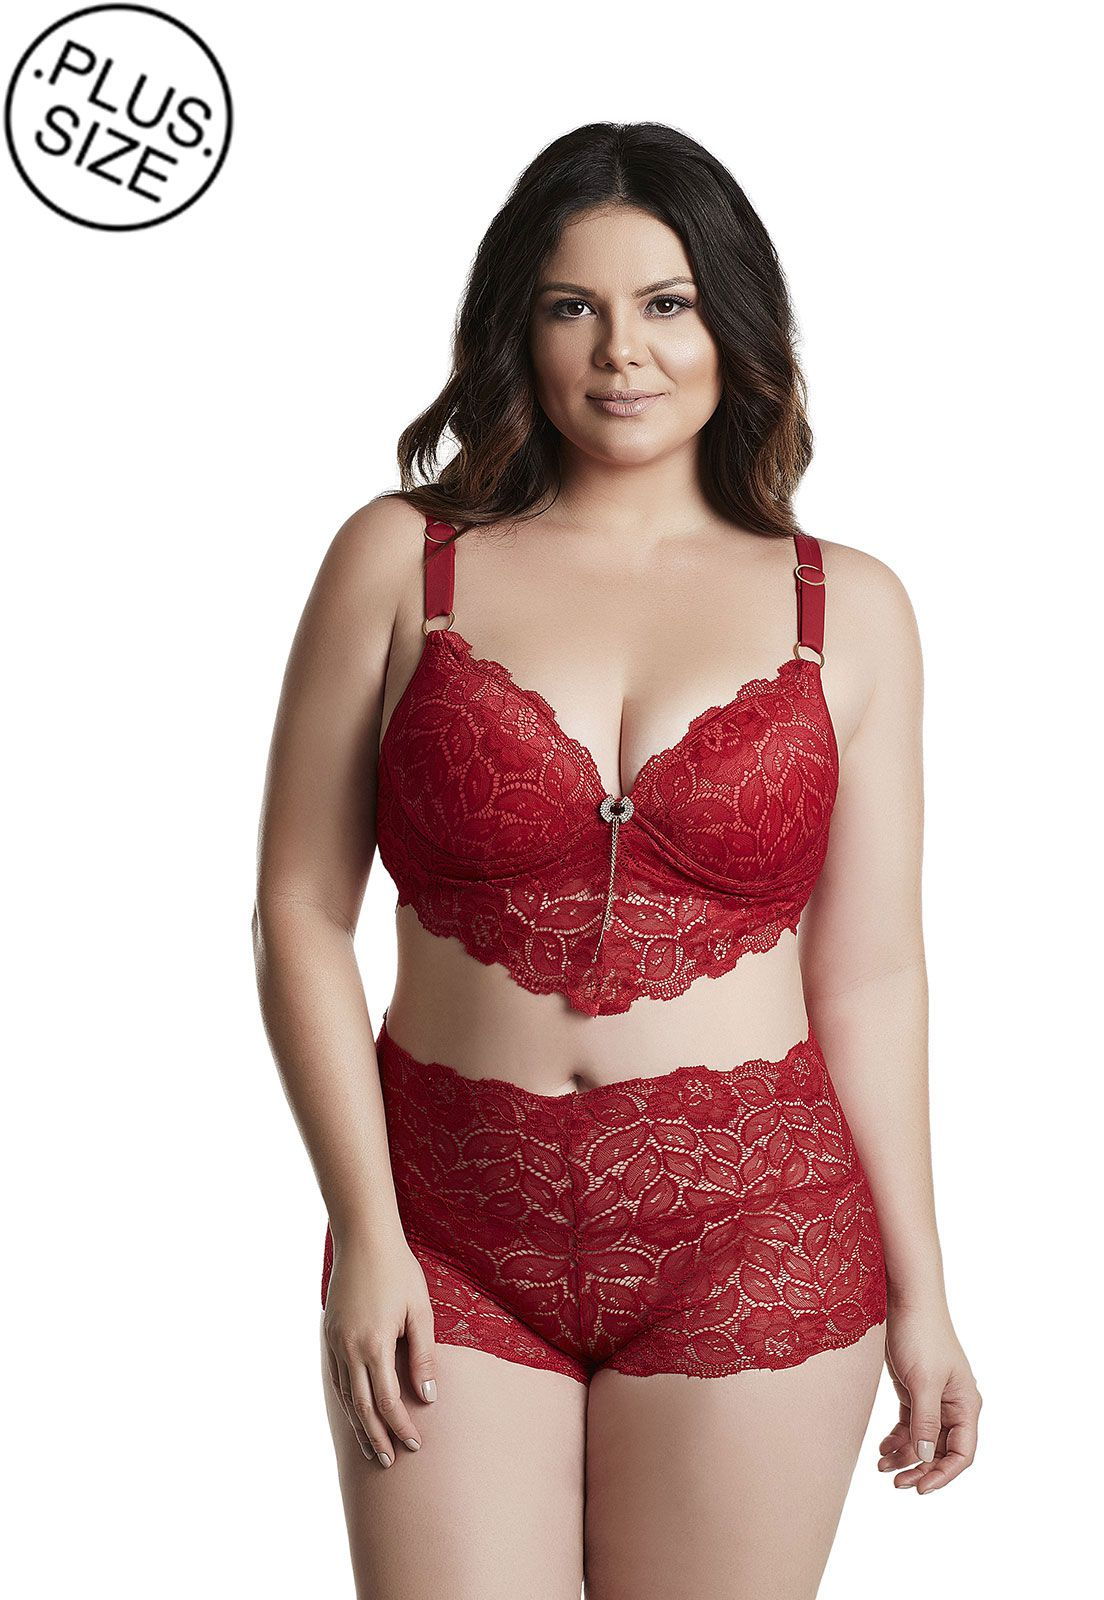 Sutiã long renda Dukley Lingerie Plus Size